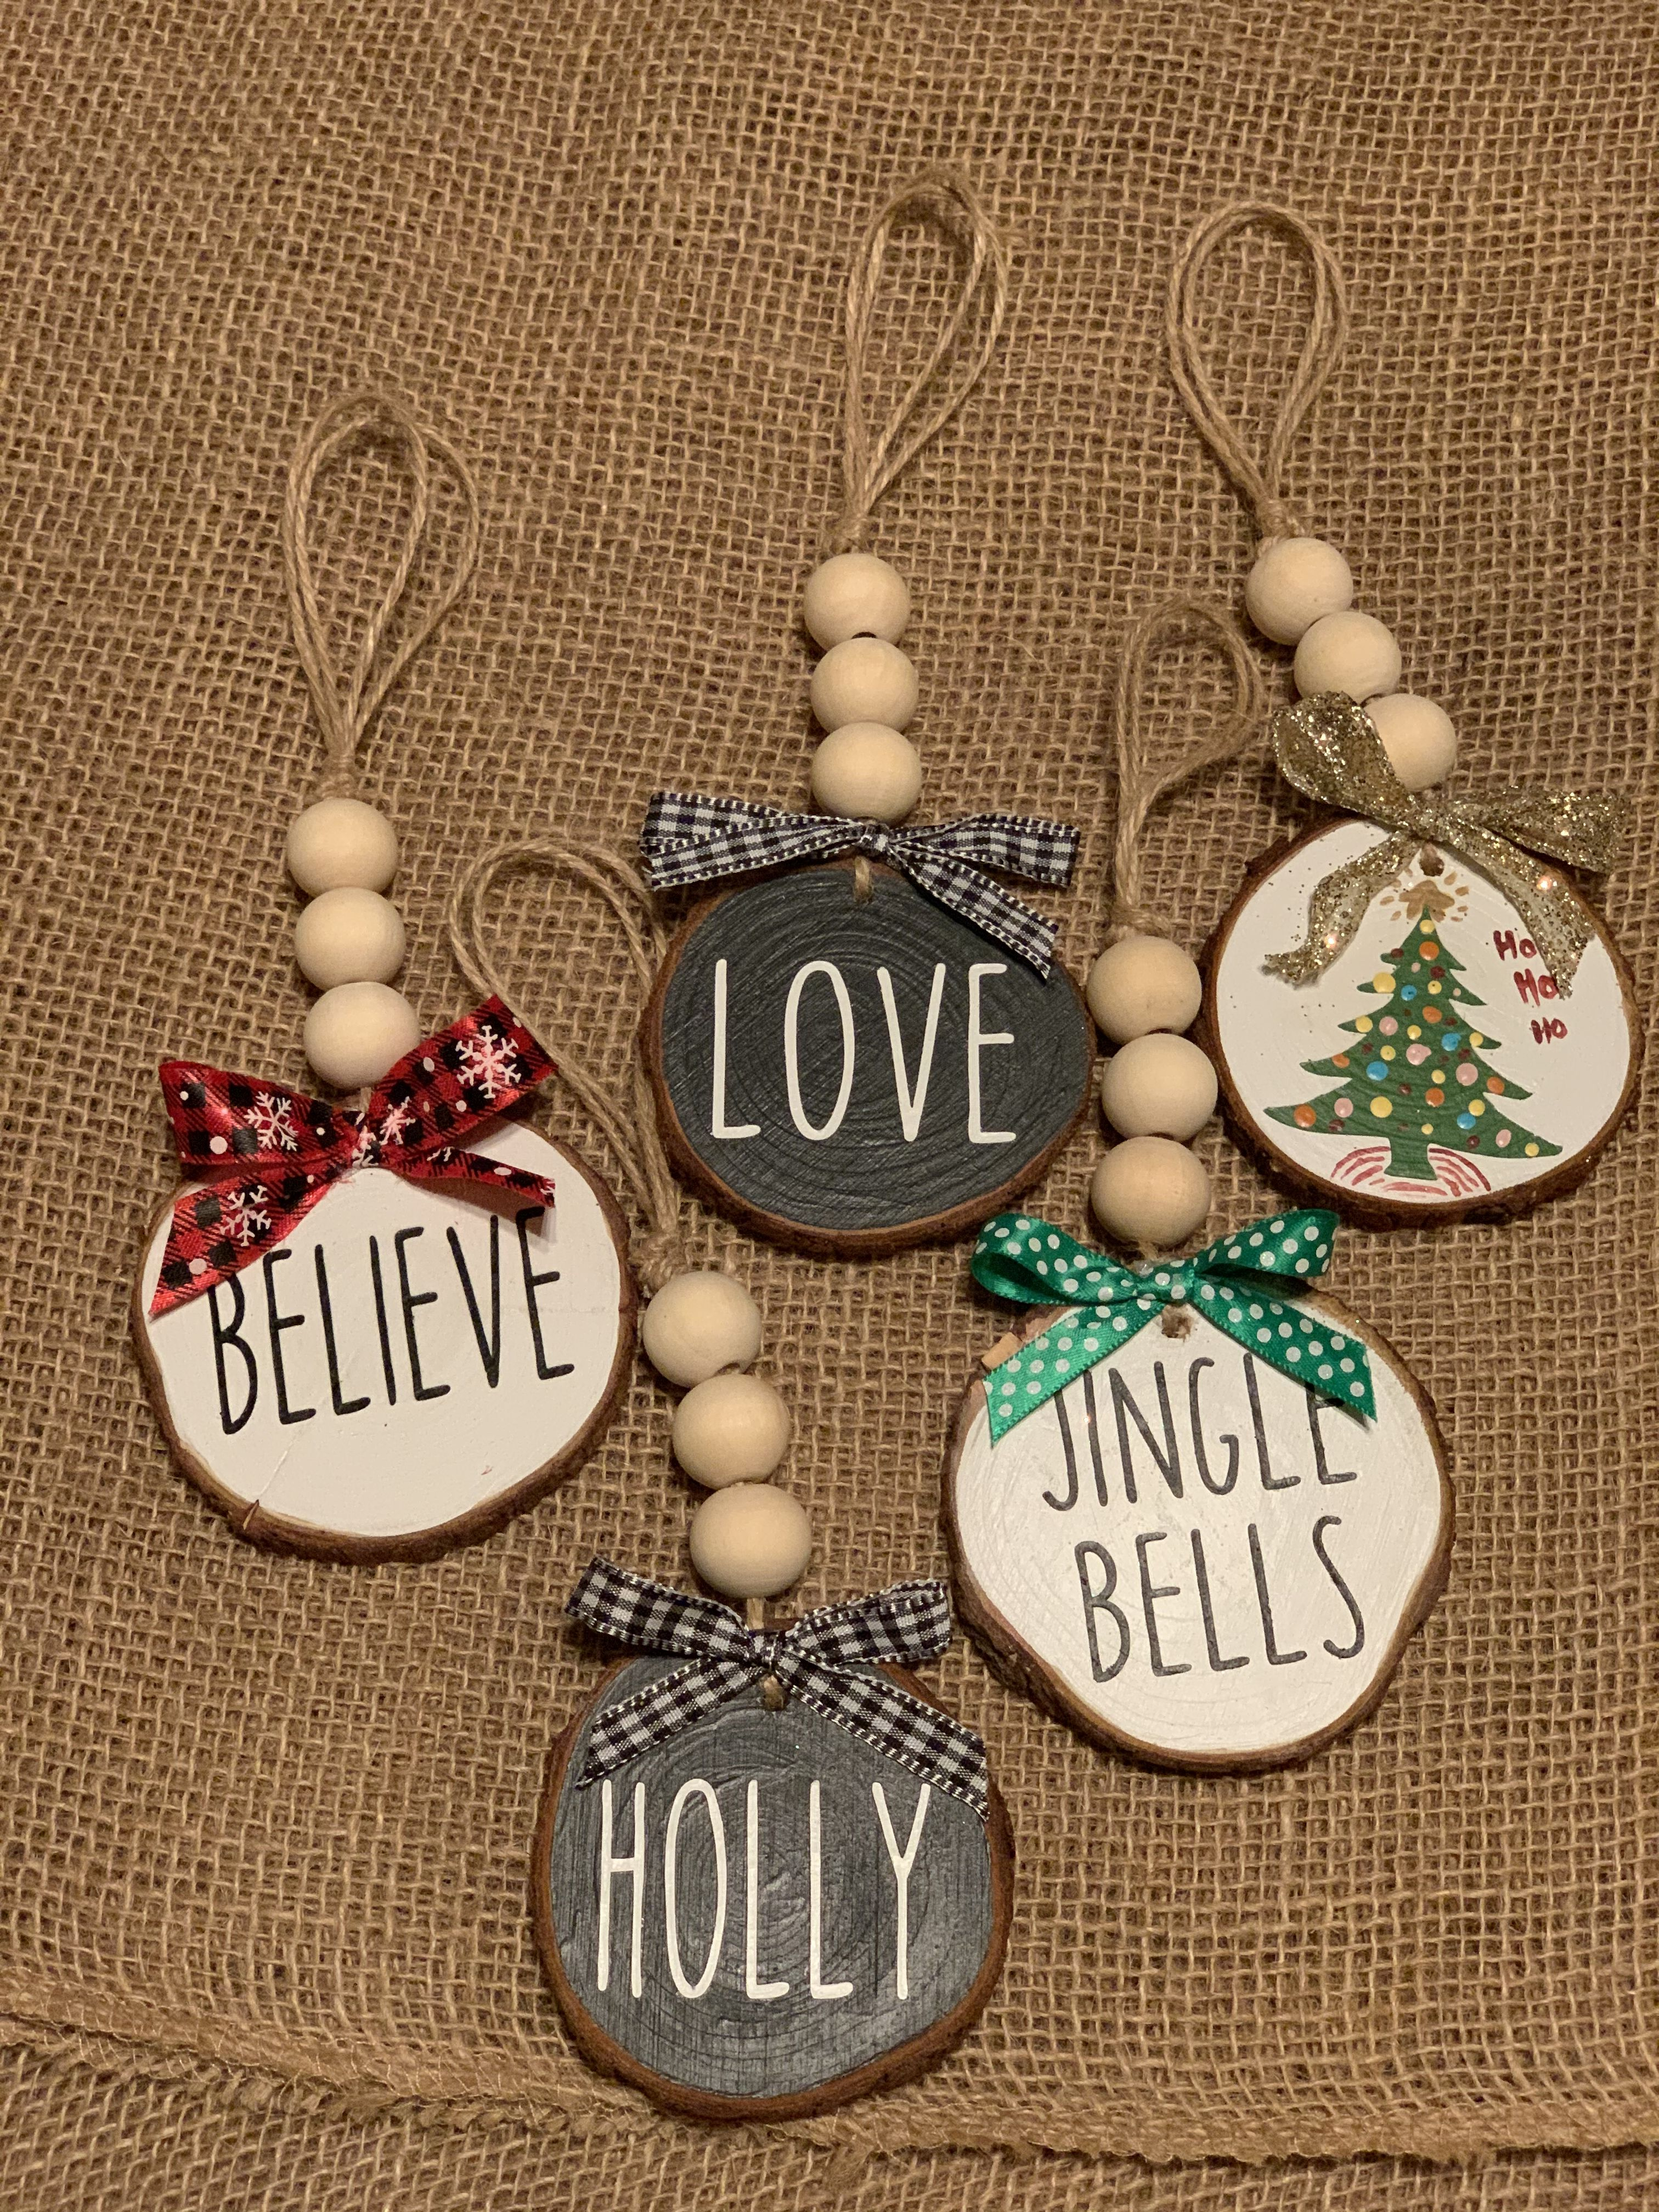 Wooden Beaded Christmas Ornaments Christmas Decor Gifting Under 8 Christmas Crafts Christmas Ornaments Christmas Crafts To Sell